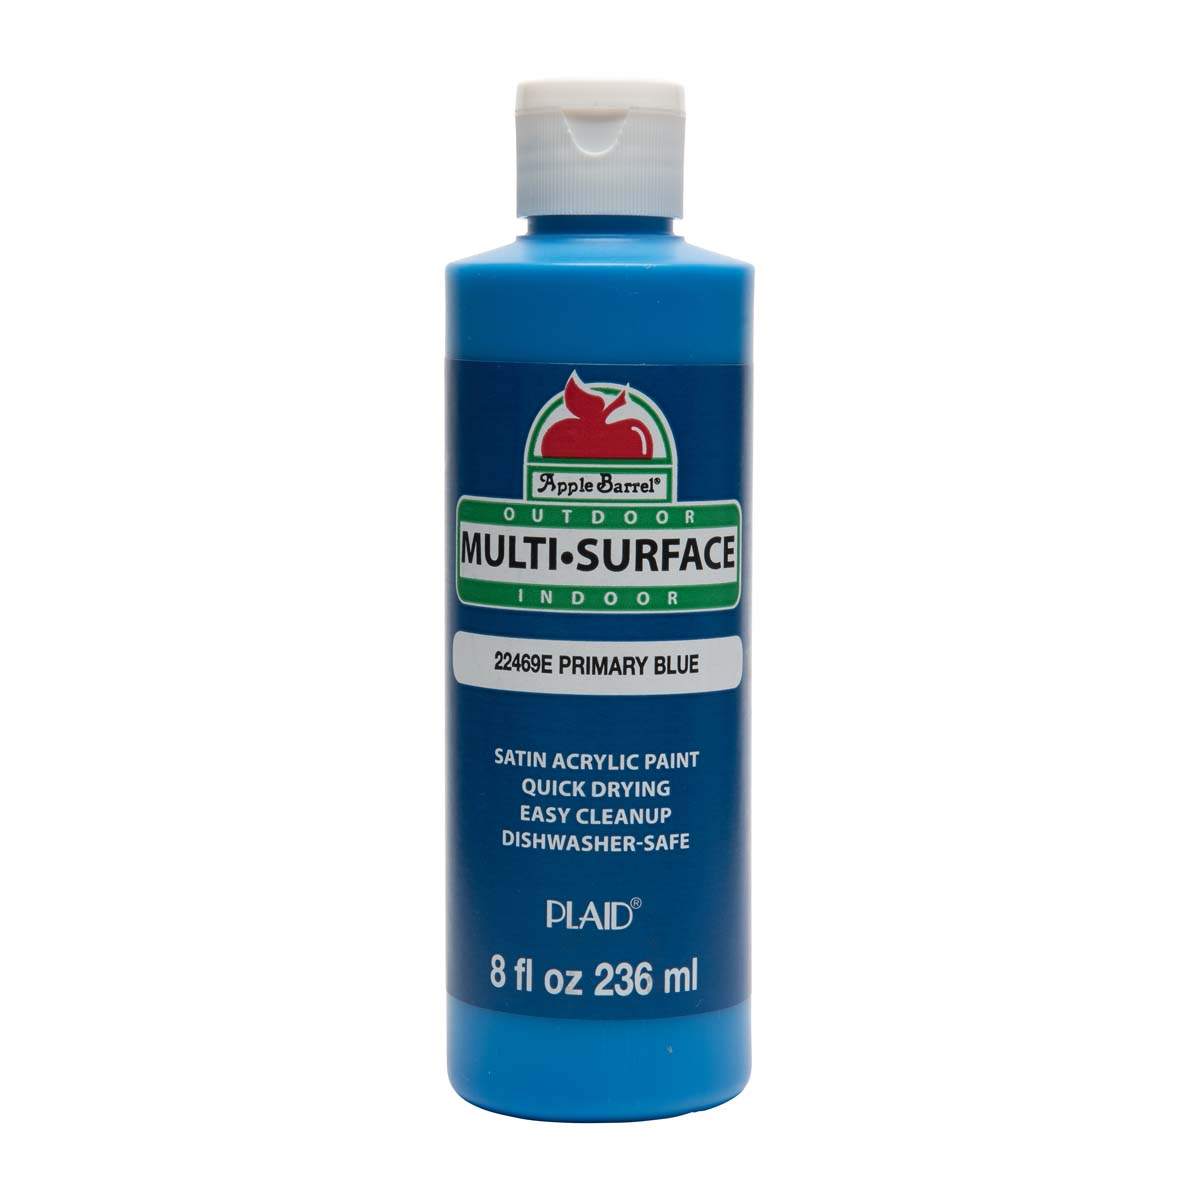 Apple Barrel ® Multi-Surface Satin Acrylic Paints - Primary Blue, 8 oz.